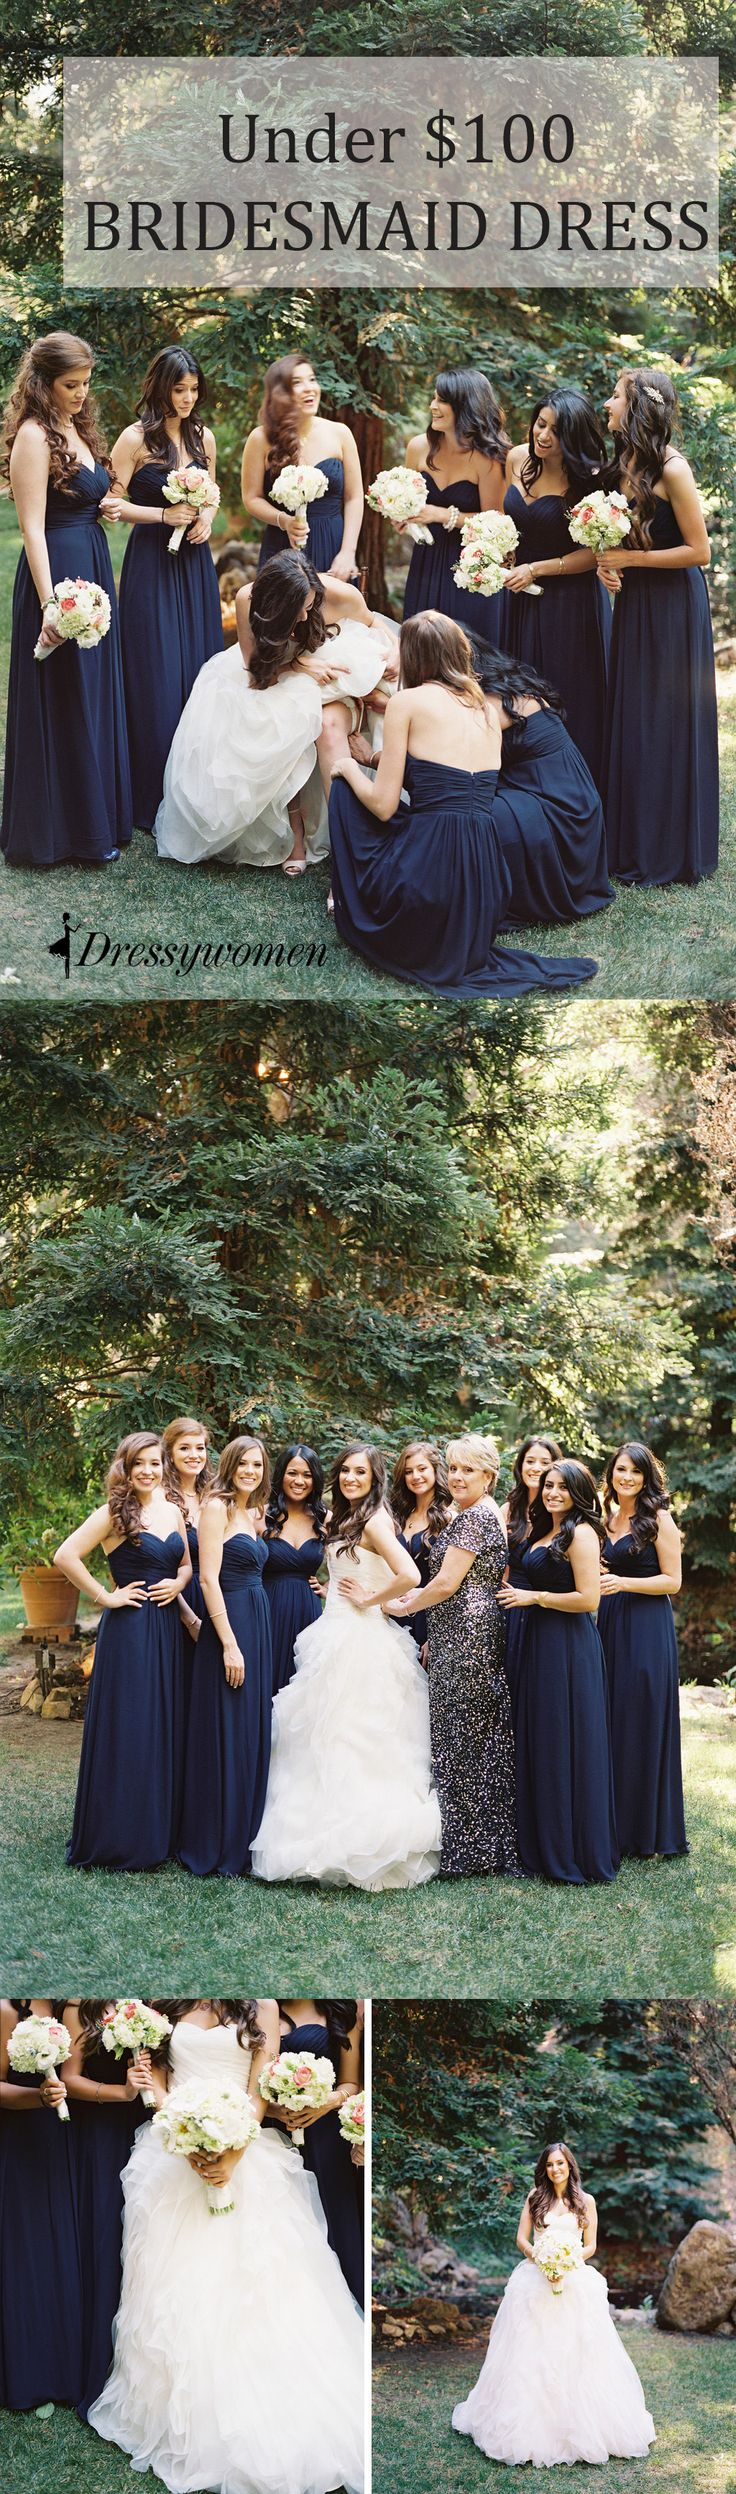 best bridesmaids images on pinterest wedding hair styles